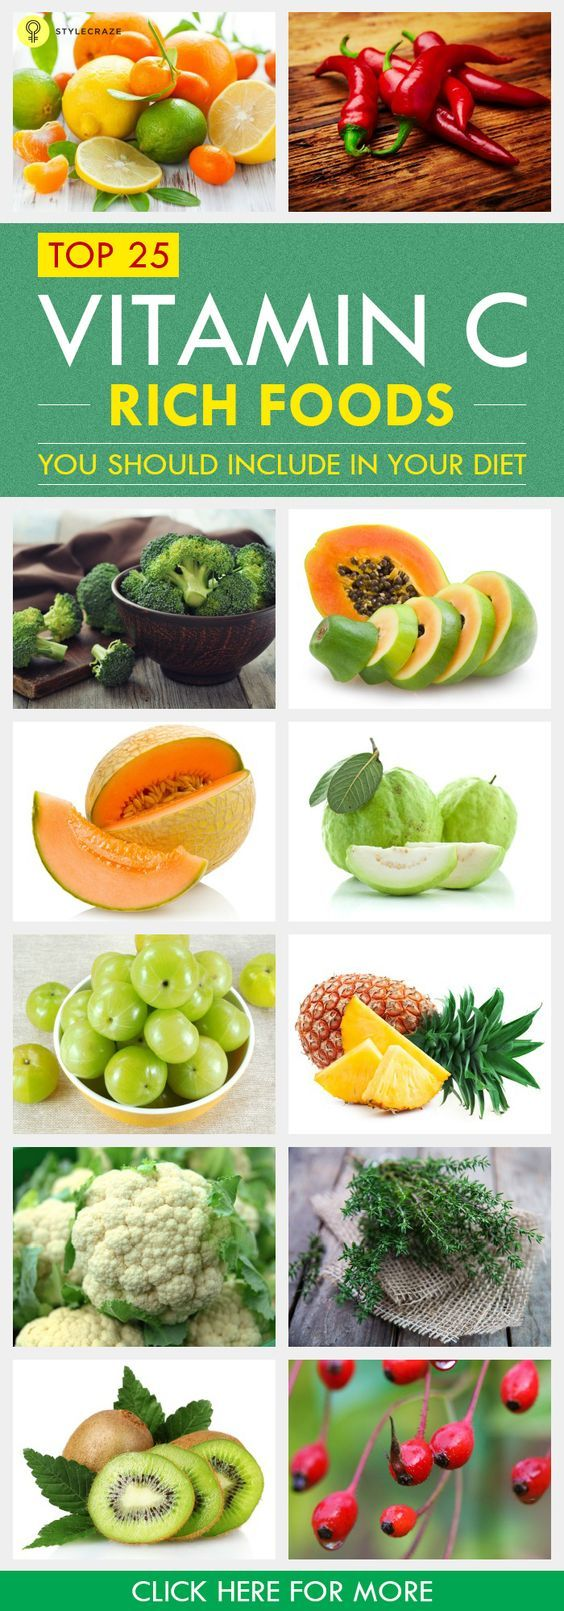 Wanting to up you Vitamin C consumption?  Here is a list of foods rich in Vitamin C:  Bell Peppers Guava Dark Green Leafy Vegetables (kale, spinach) Kiwi fruit Broccoli Strawberries Oranges Tomatoes Peas Papaya #plantbased #health